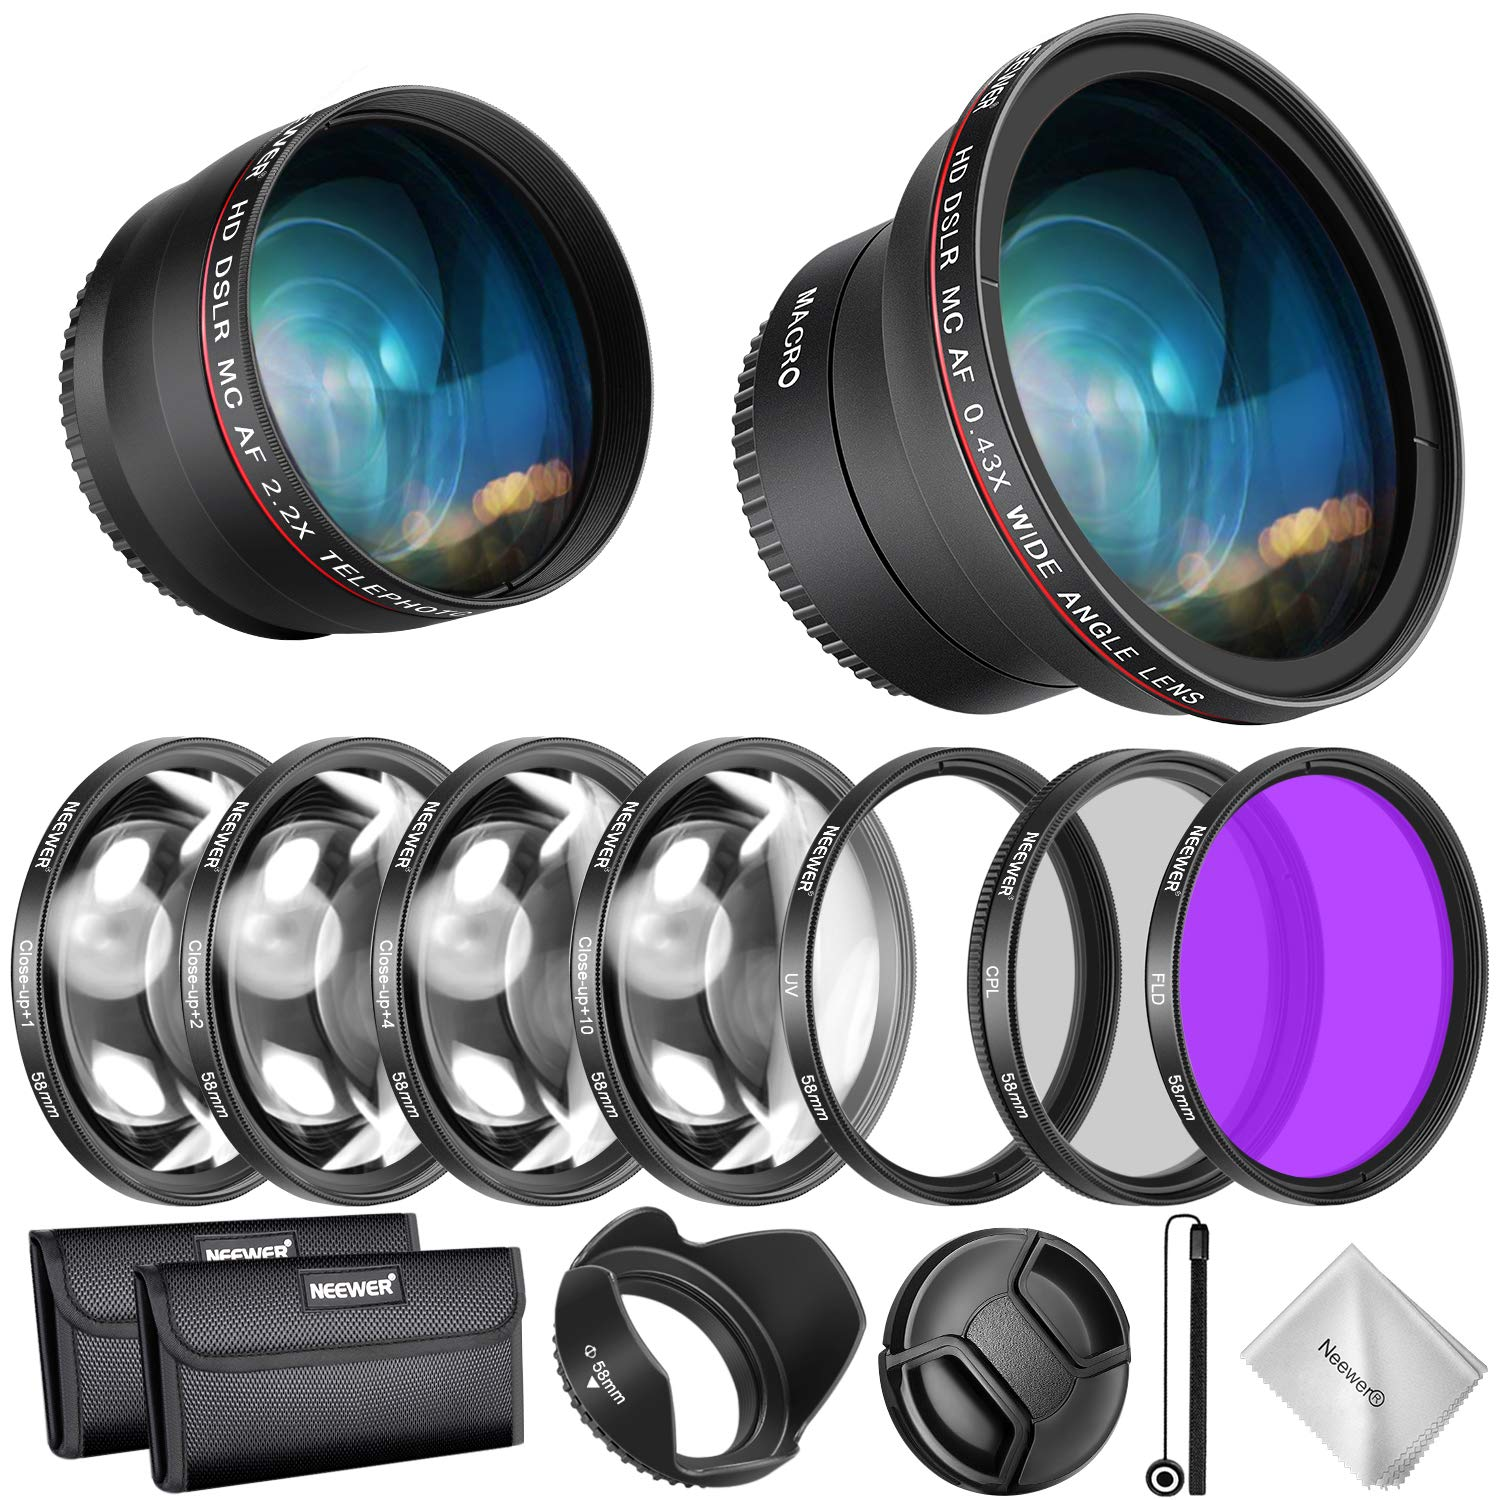 Neewer 58mm Lens and Filter Accessory Kit for Canon Rebel EF-S 18-55mm Lens: 0.43X Wide Angle Lens, 2.2X Telephoto Lenses, UV/CPL/FLD/Filter and Macro Filter Set, Lens Hood, Cap, Bag, etc by Neewer